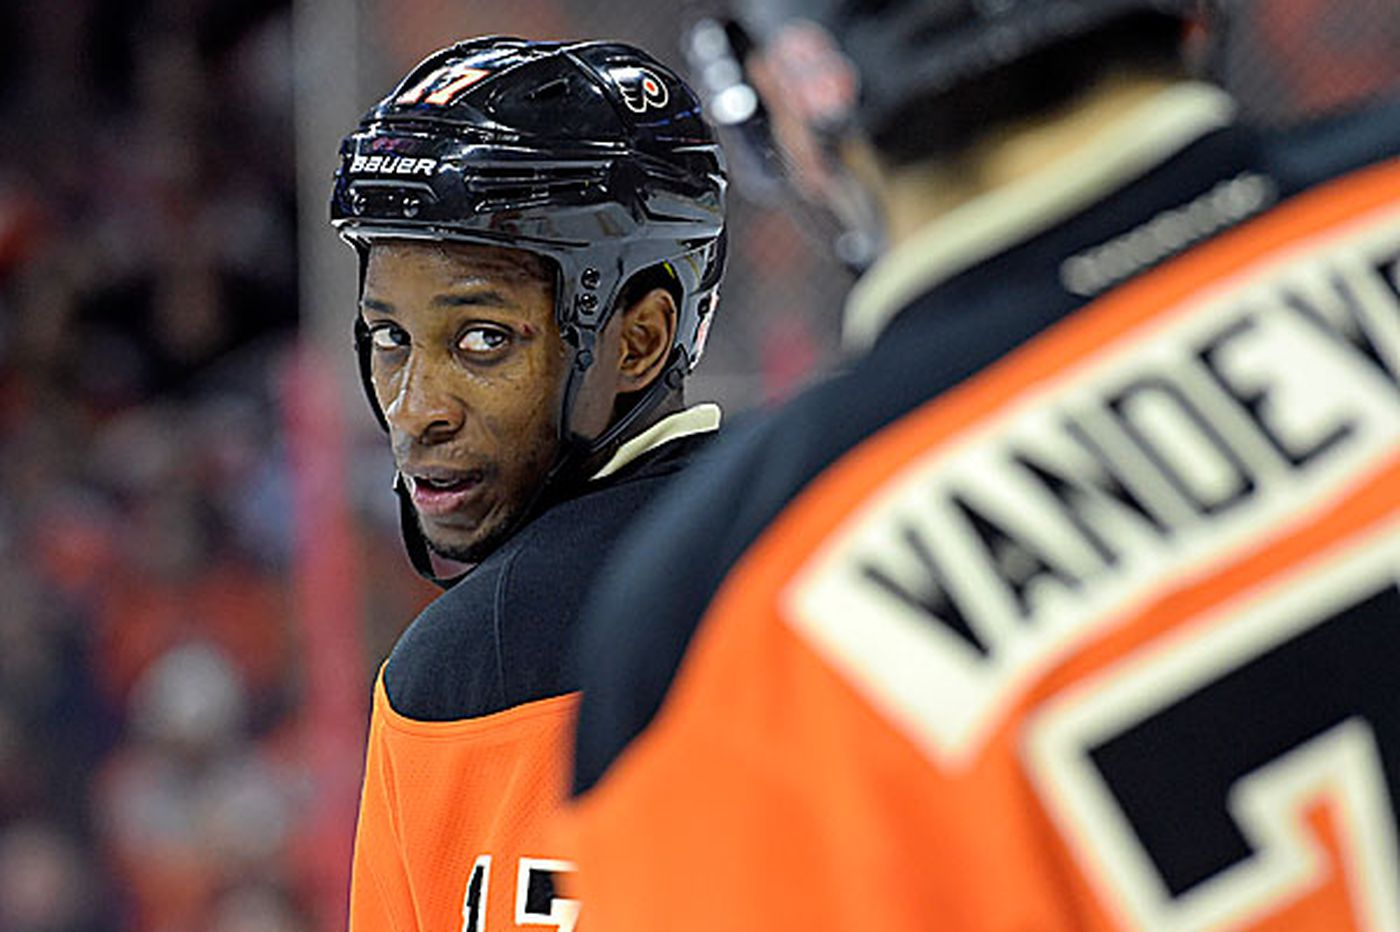 Flyers Notes: Flyers' Simmonds out for rest of season with leg injury